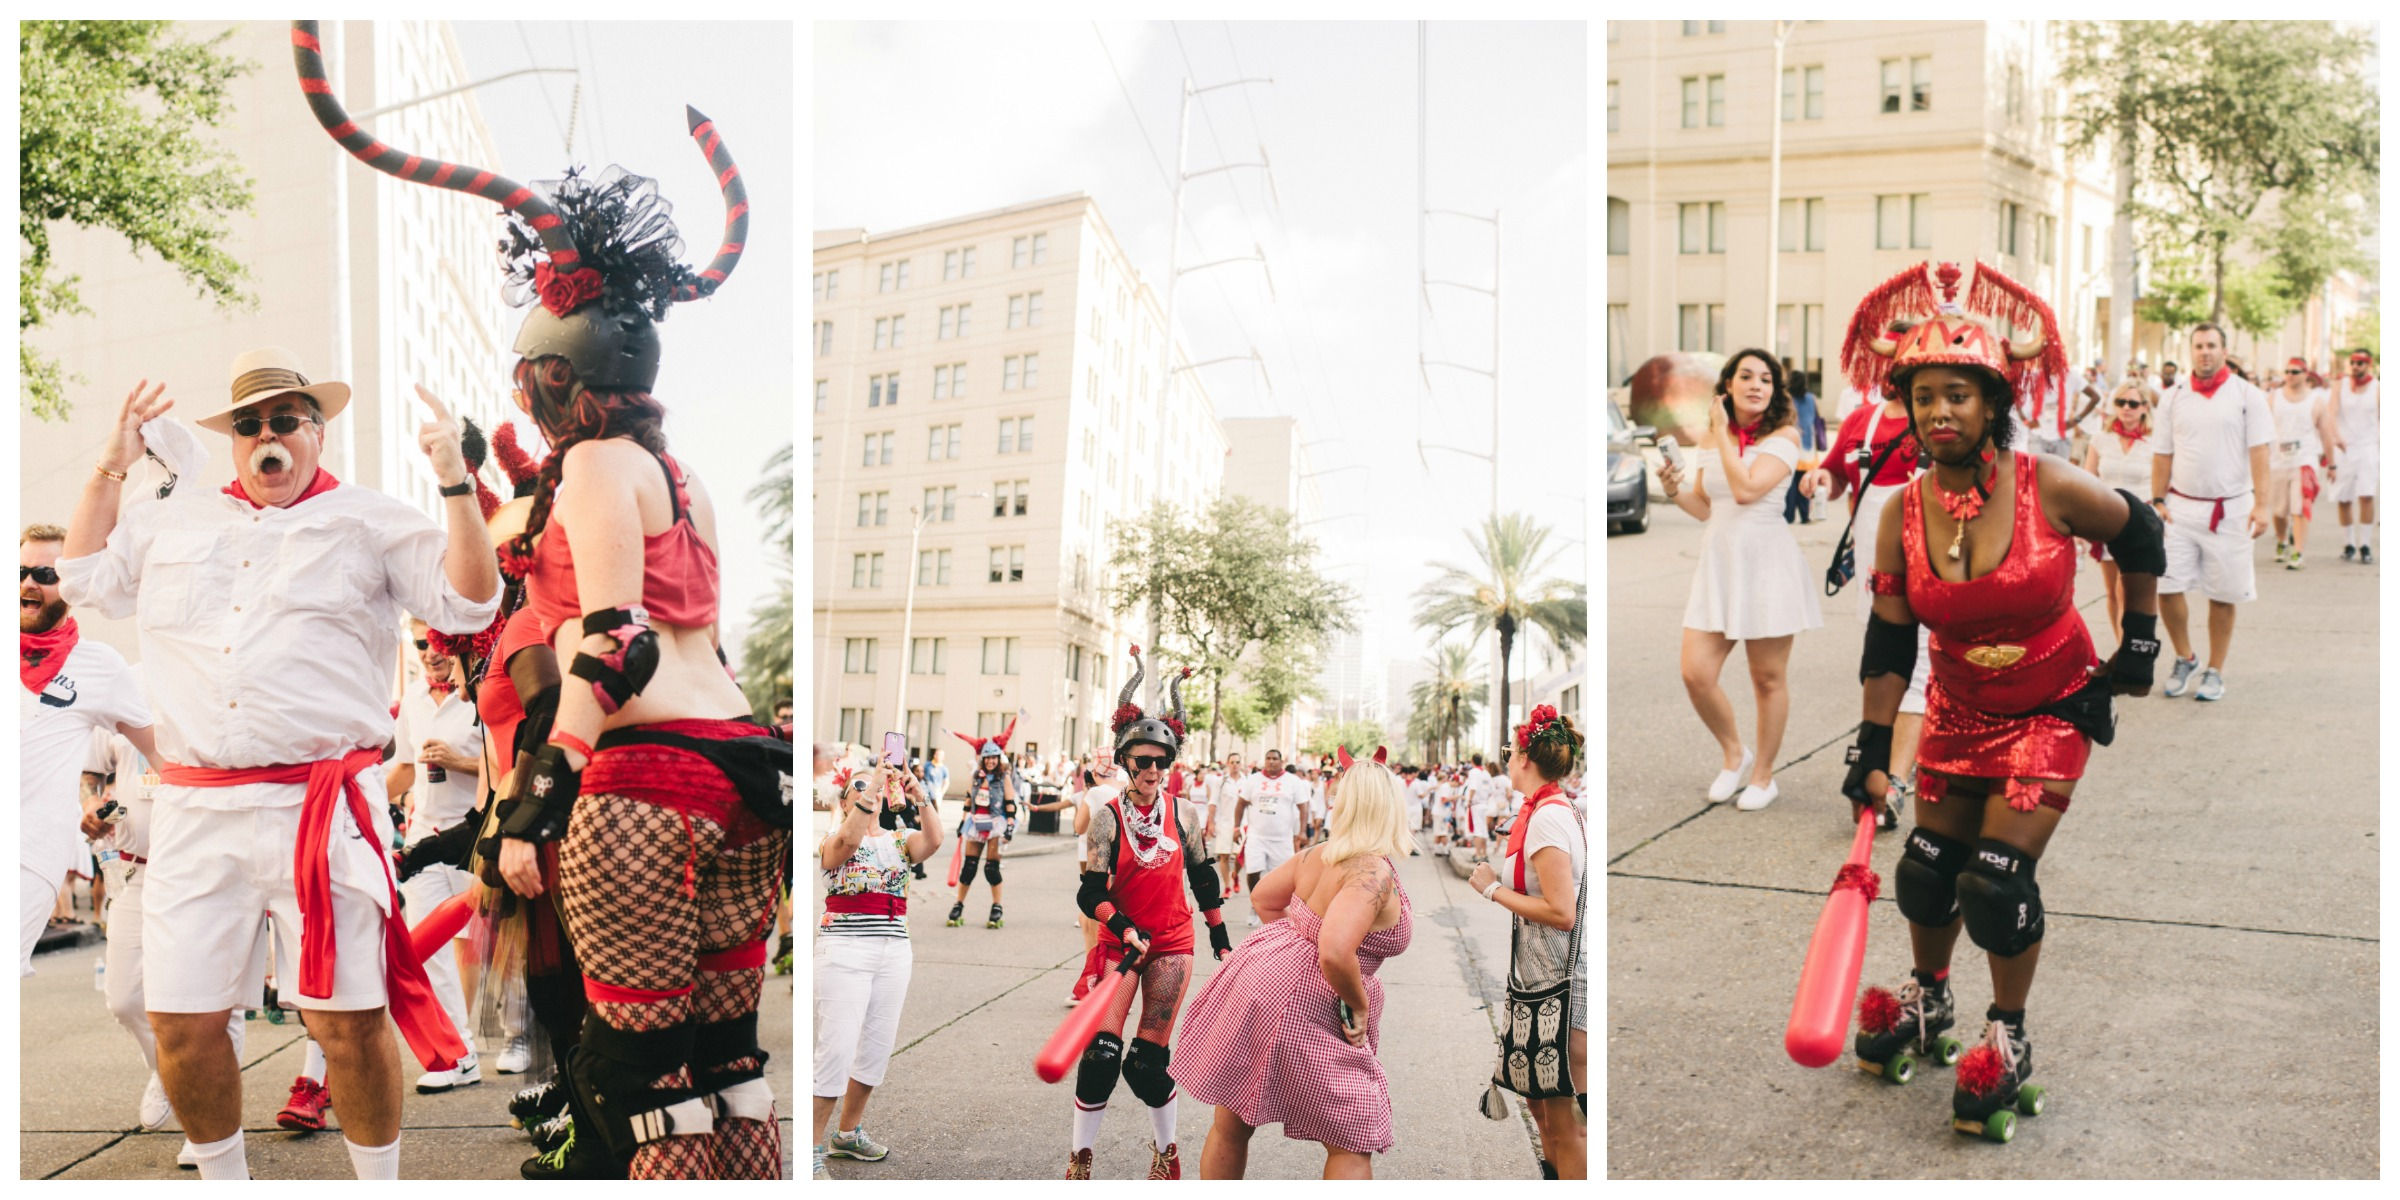 TRAVEL NOIRE - NEW ORLEANS GIRLS TRIP - TWOTWENTY by CHI-CHI AGBIM collage 14.jpg